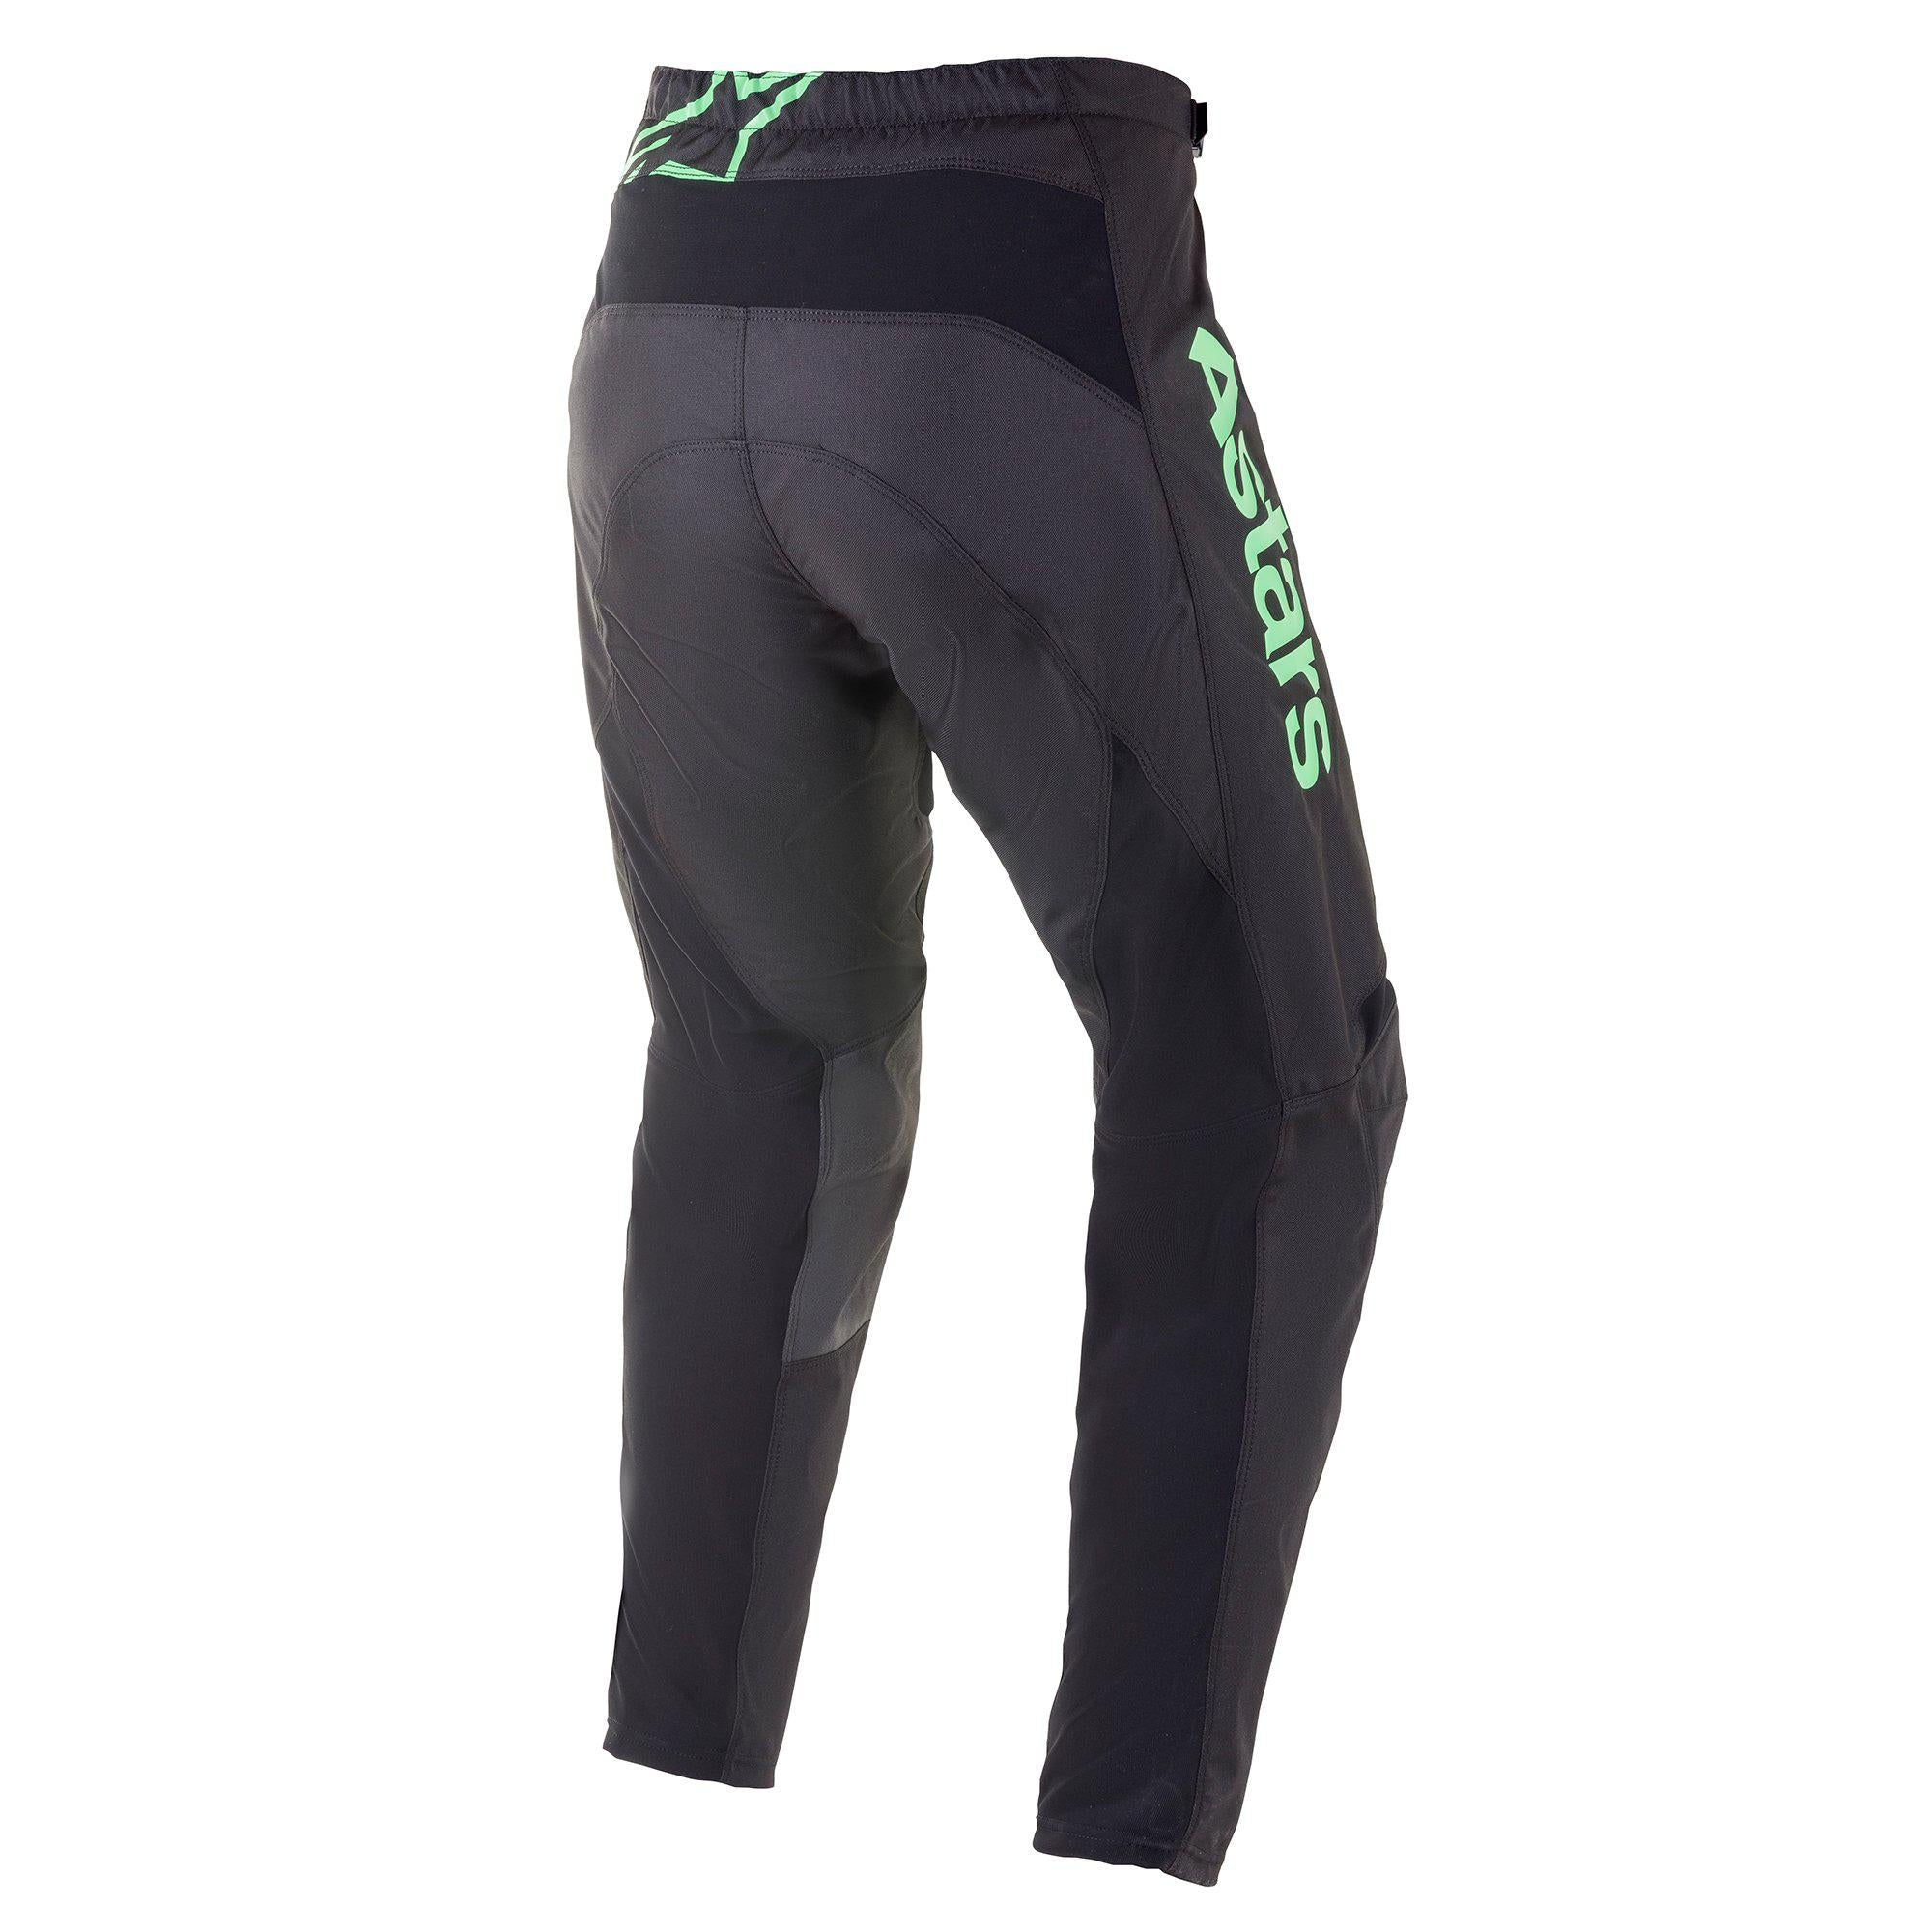 2021 Fluid Chaser Pants